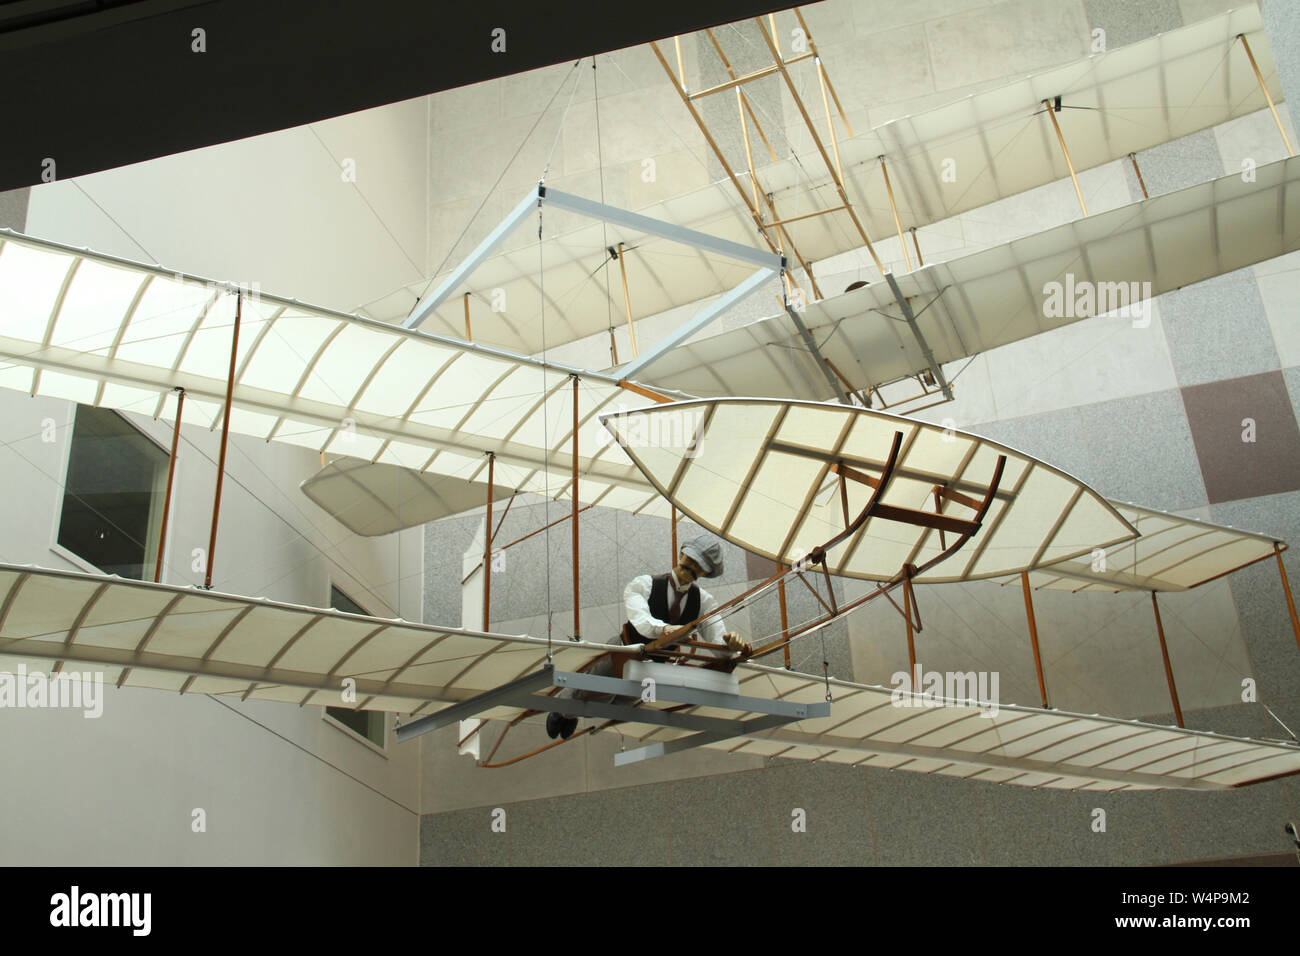 Replica of one of the Wright Brothers' gliders at North Carolina Museum of History in Raleigh, NC, USA Stock Photo